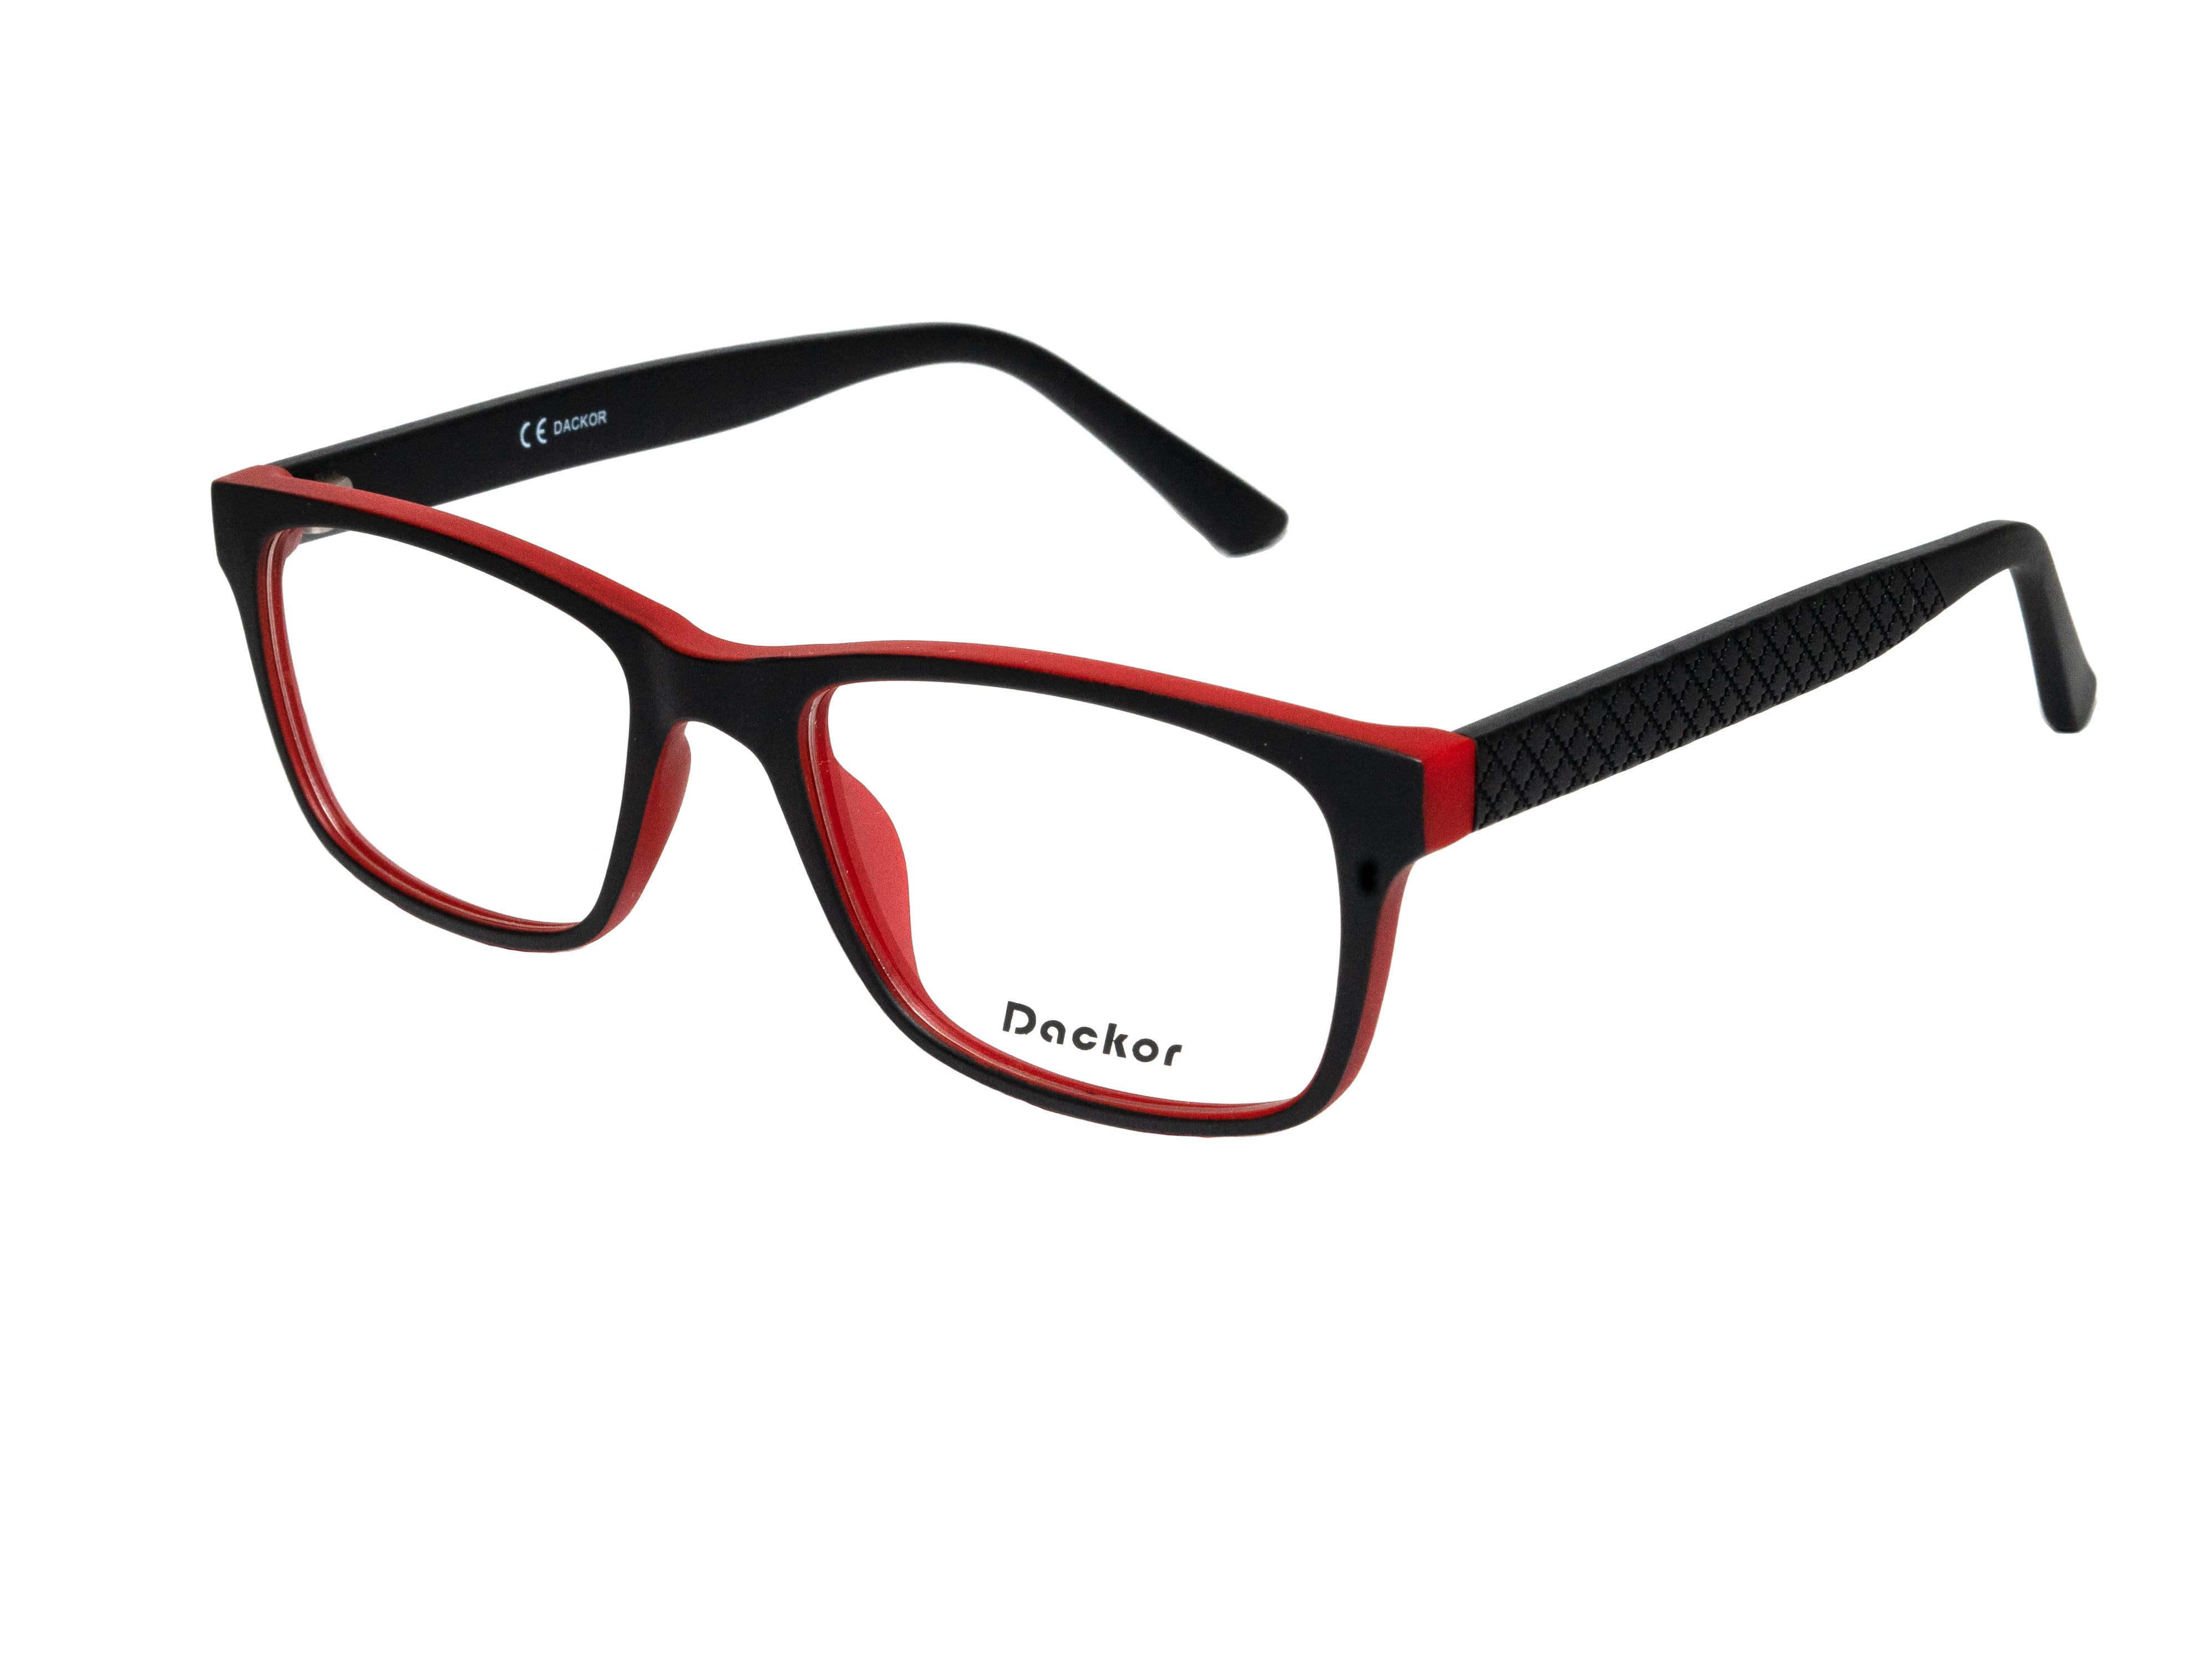 Dackor 635 red